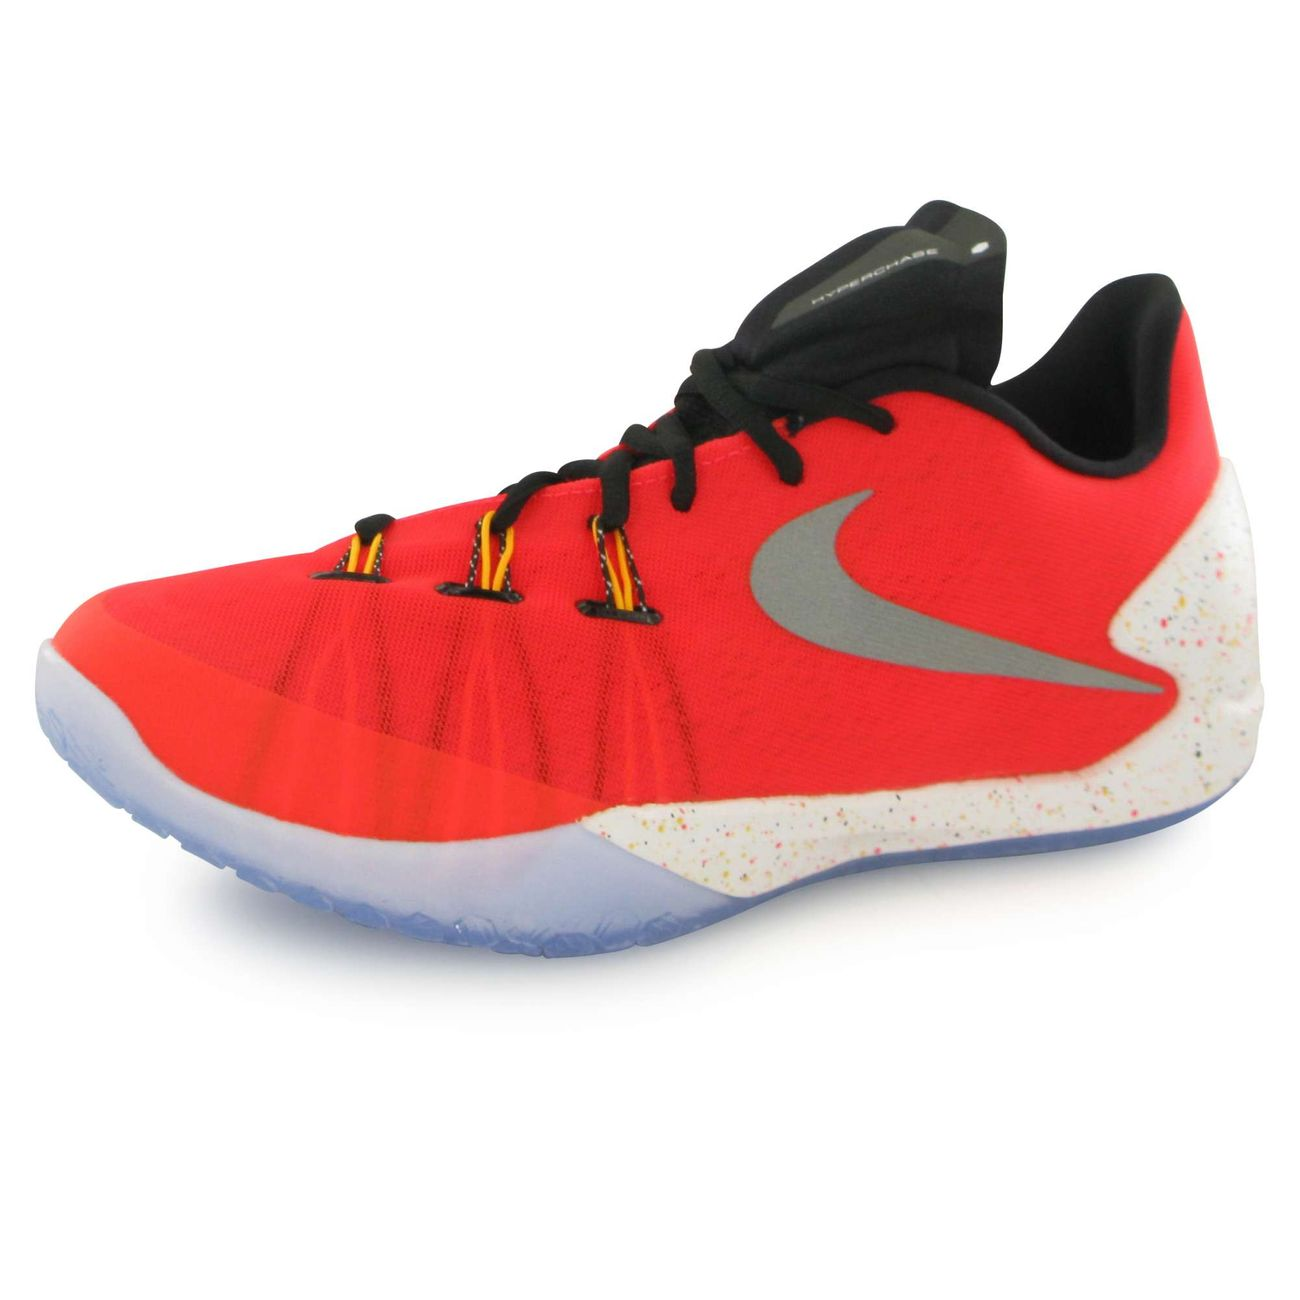 check out 26cfa 62f80 Basket ball homme NIKE Nike Hyperchase Premium orange, chaussures de  basketball homme ...